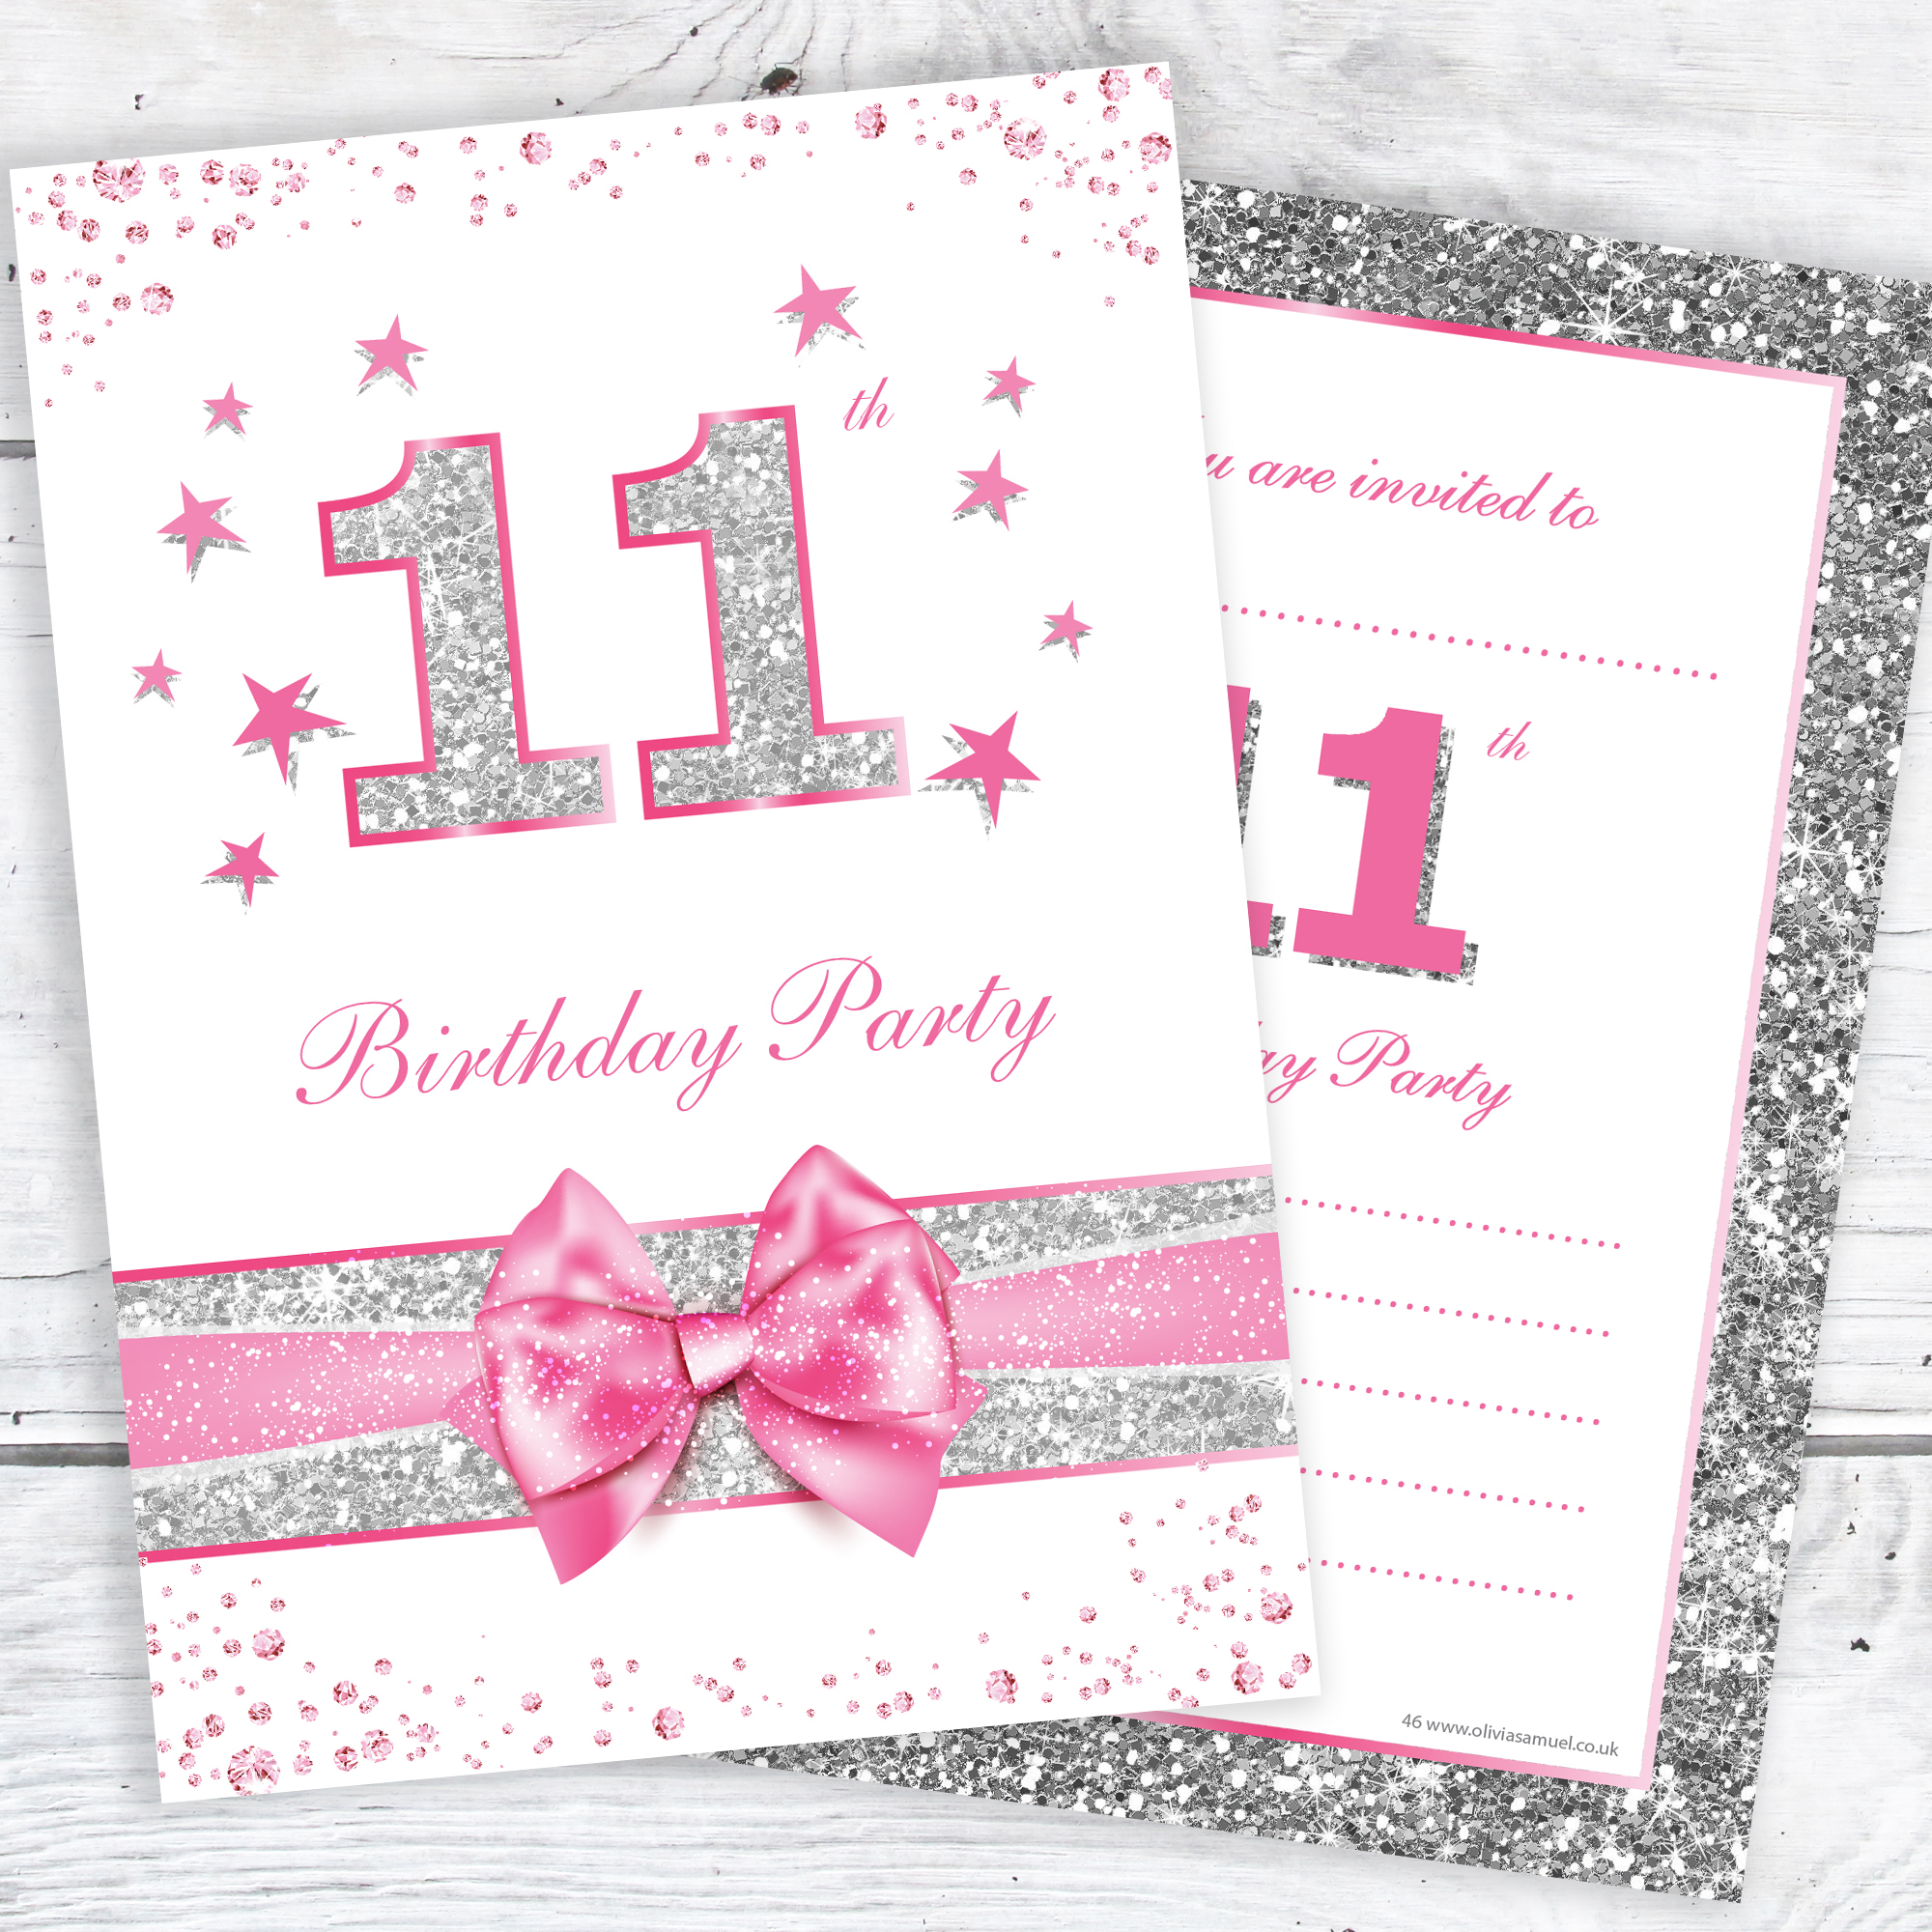 11th Birthday Party Invitations Pink Sparkly Design And Photo Effect Silver Glitter A6 Postcard Size With Envelopes Pack Of 10